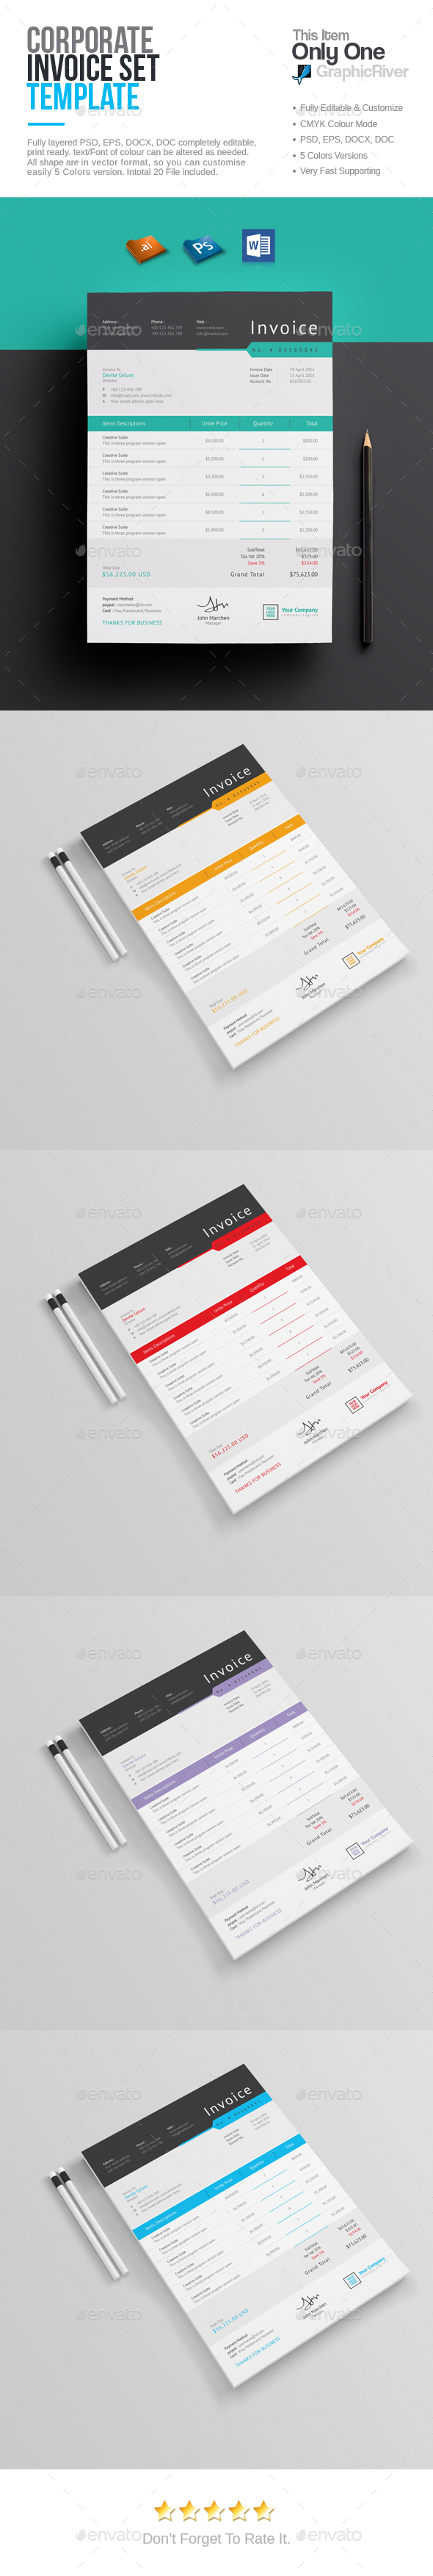 Invoice Templates - Proposals & Invoices Stationery